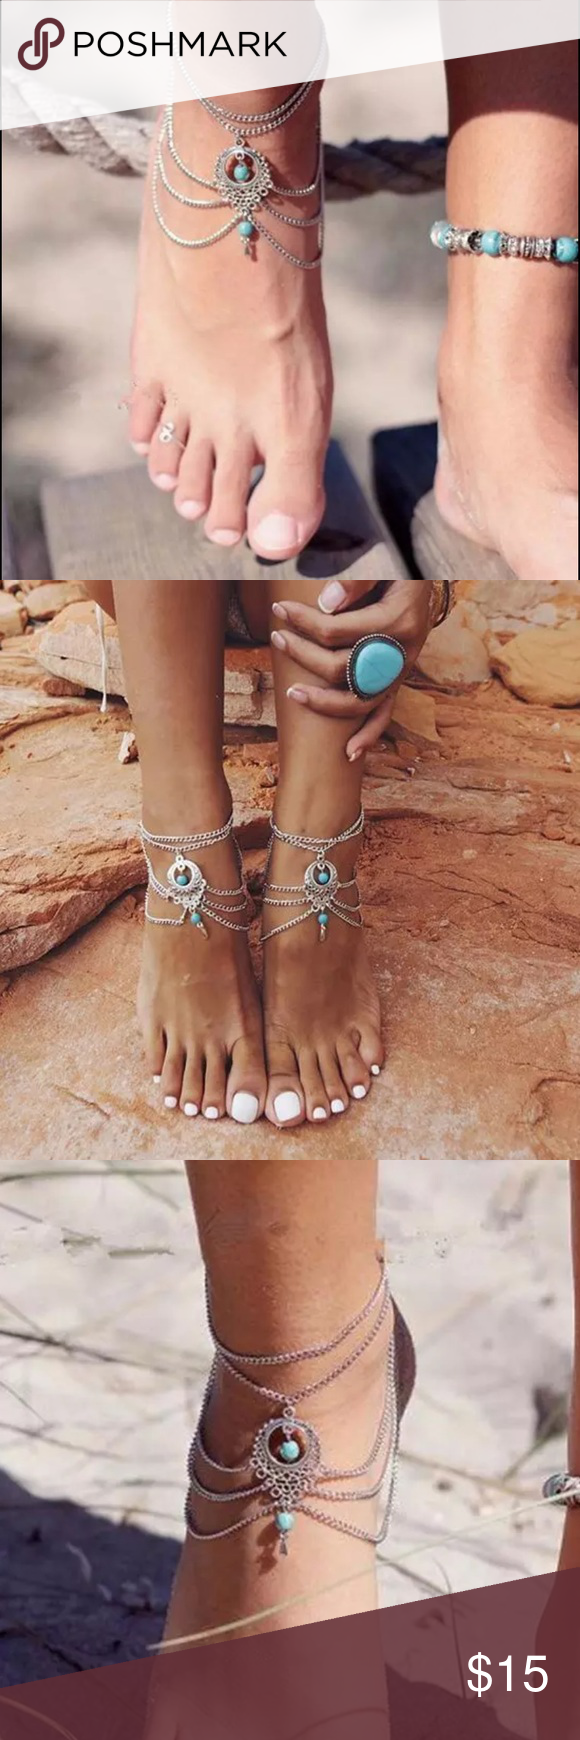 ❗️New❗️Boho Turquoise Barefoot Beach Anklet 100% Brand new and high quality Chain length 22cm+5cm(5cm Extended chain)-Material:Alloy+Turquoise . Color:Antique Silver.- Package Included: 1Pc X Turquoise Tassel Anklet Boutique Jewelry